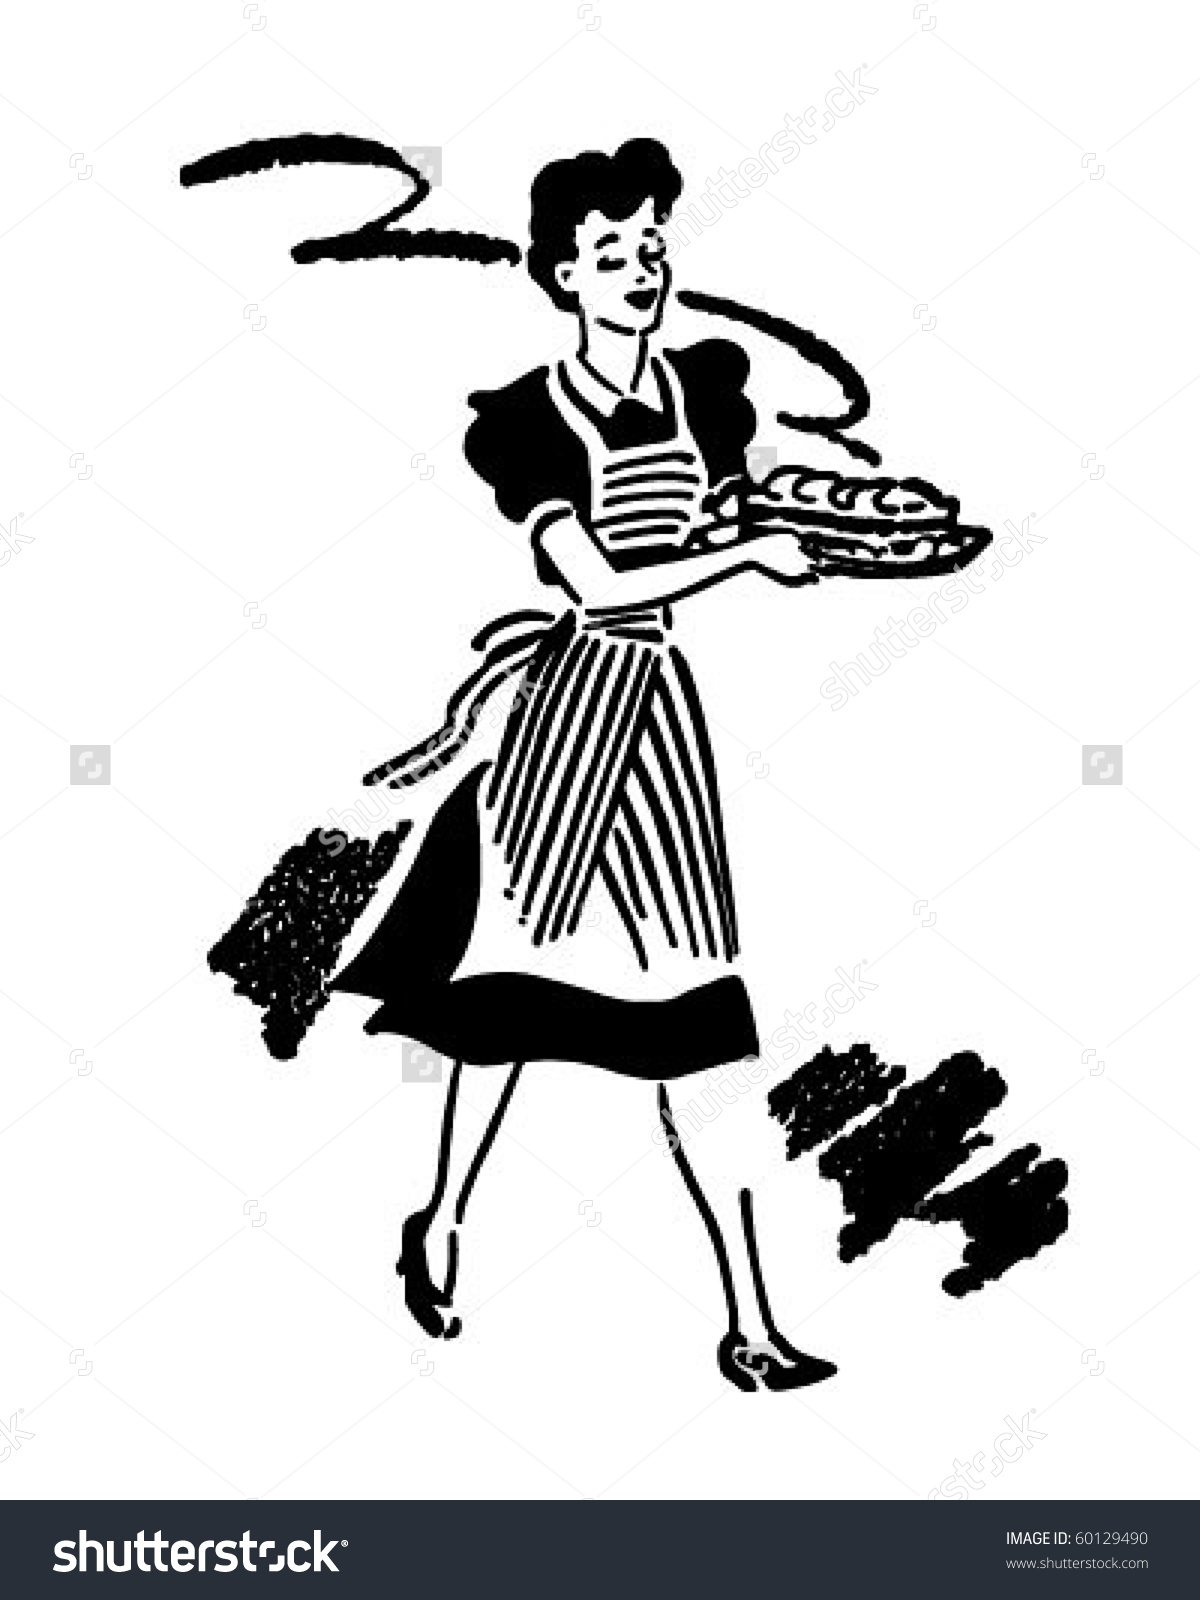 Waitress Serving Food Retro Clip Art Stock Vector 60129490.